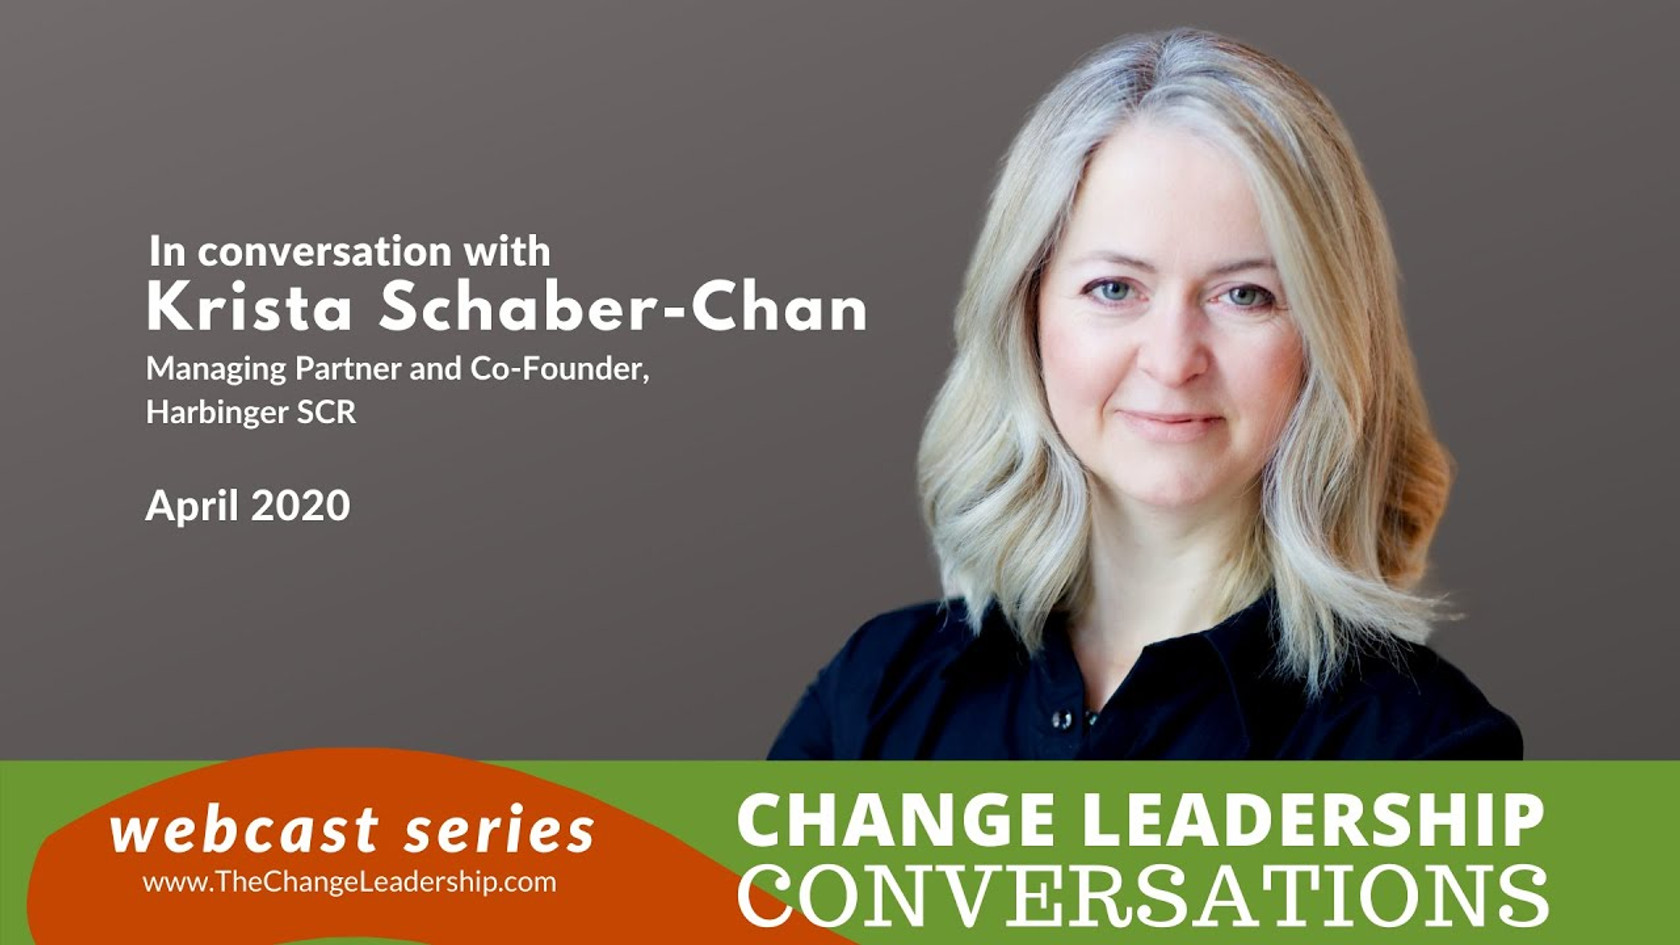 Change Leadership Conversations Webcast with Krista Schaber-Chan, Managing Partner Harbinger SCR